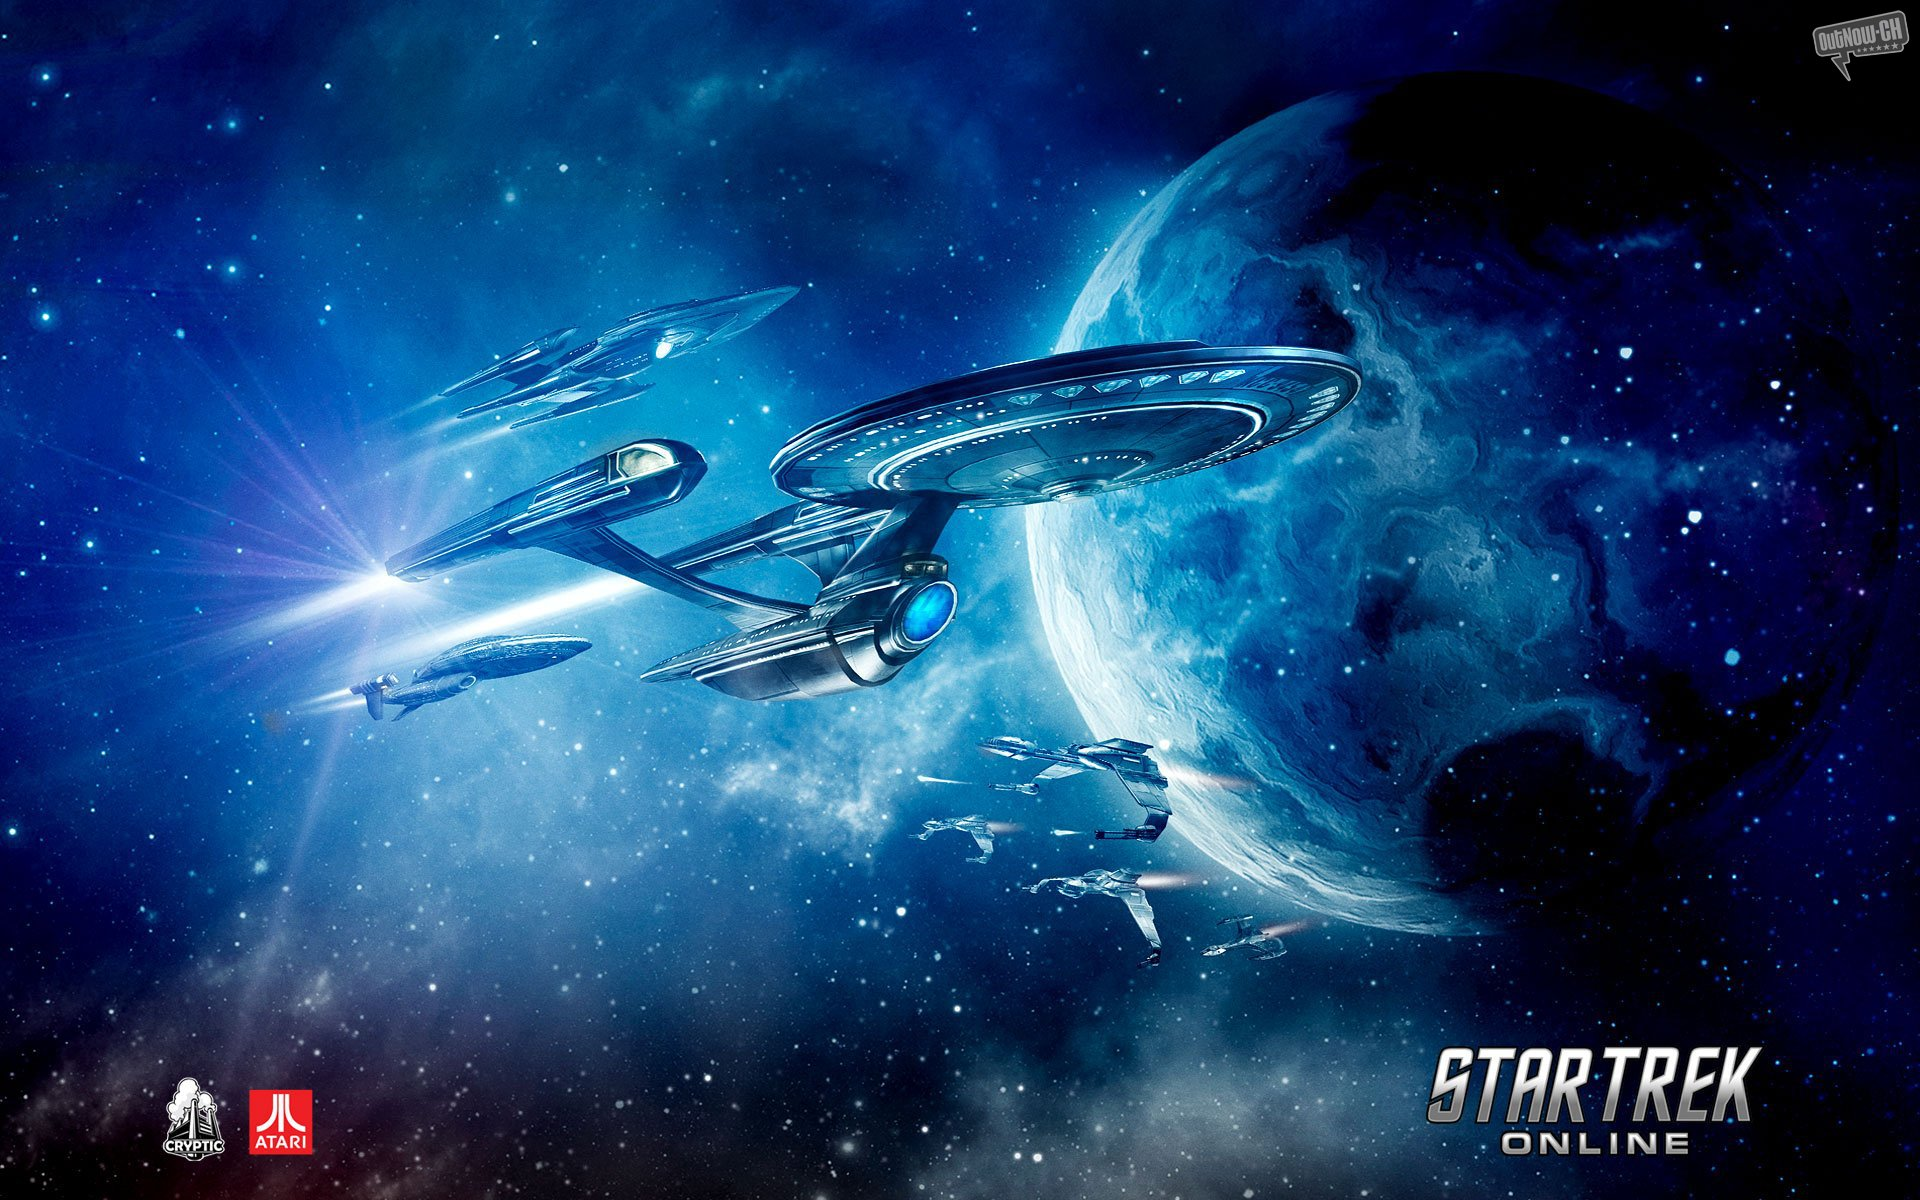 Star Trek-Online Computer Wallpapers, Desktop Backgrounds ...